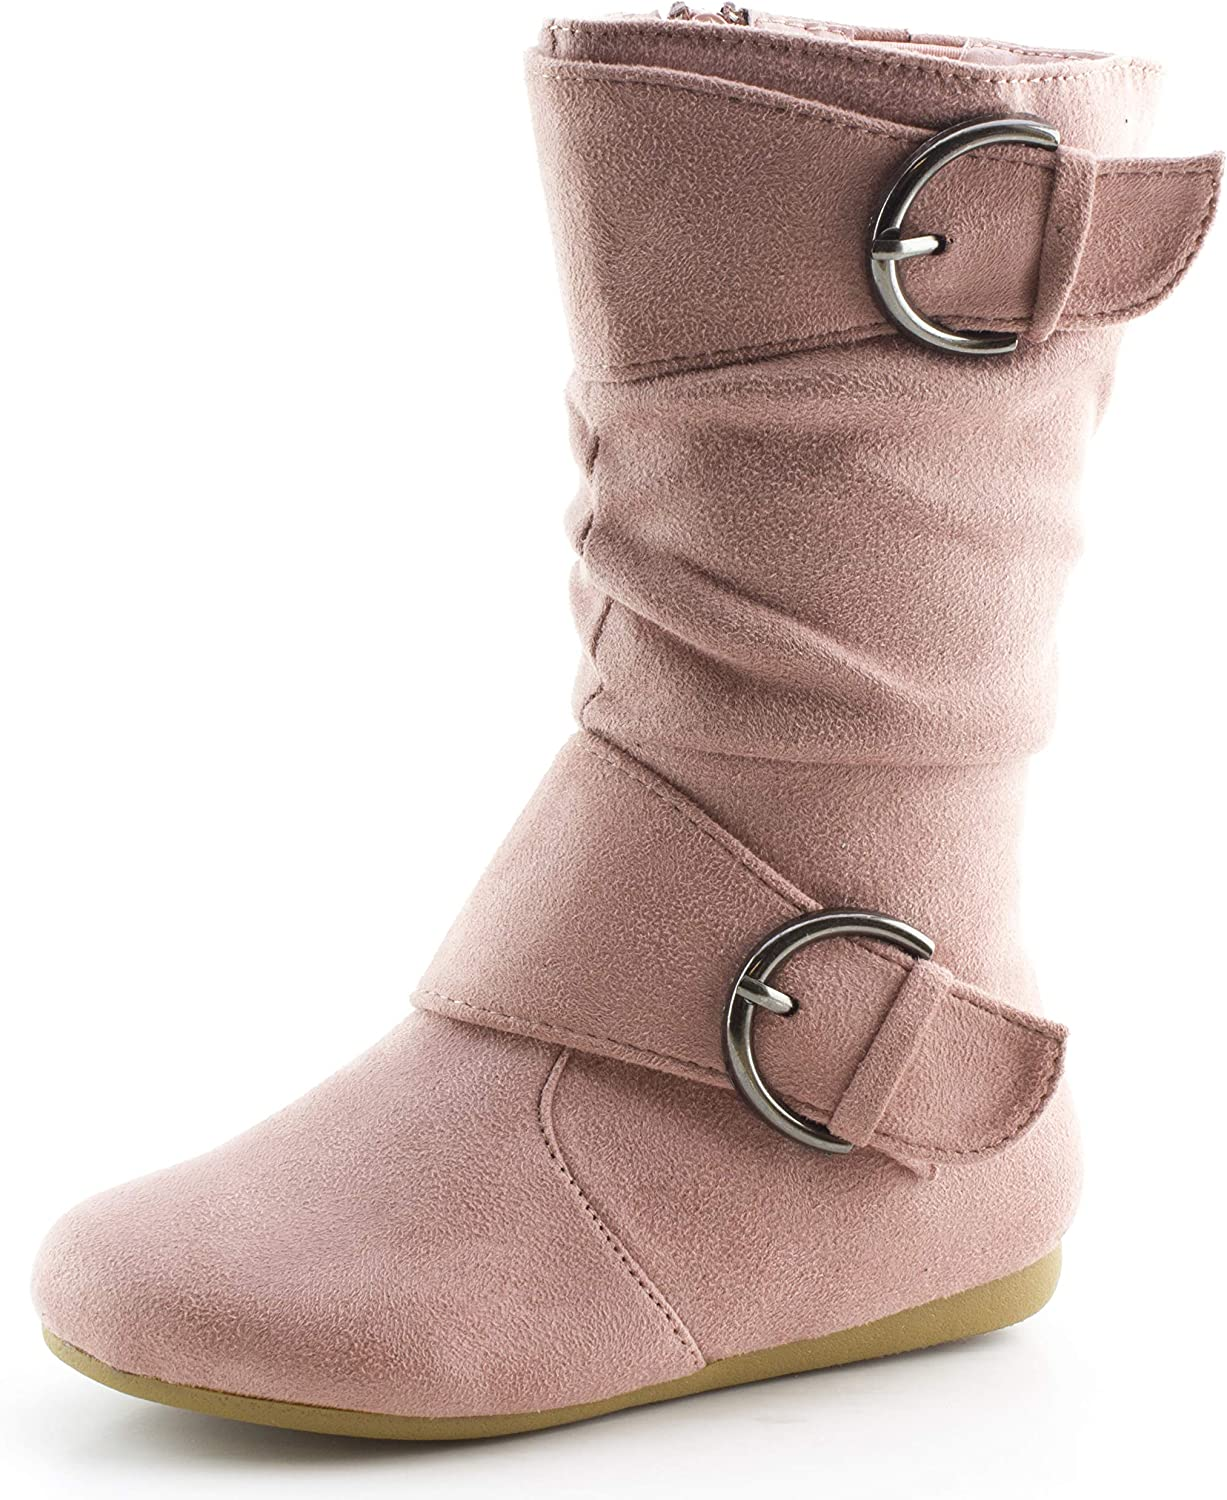 Girls Ankle Boots Kids Childrens Zip Up Mid Calf Brown Leather Look Shoes Size